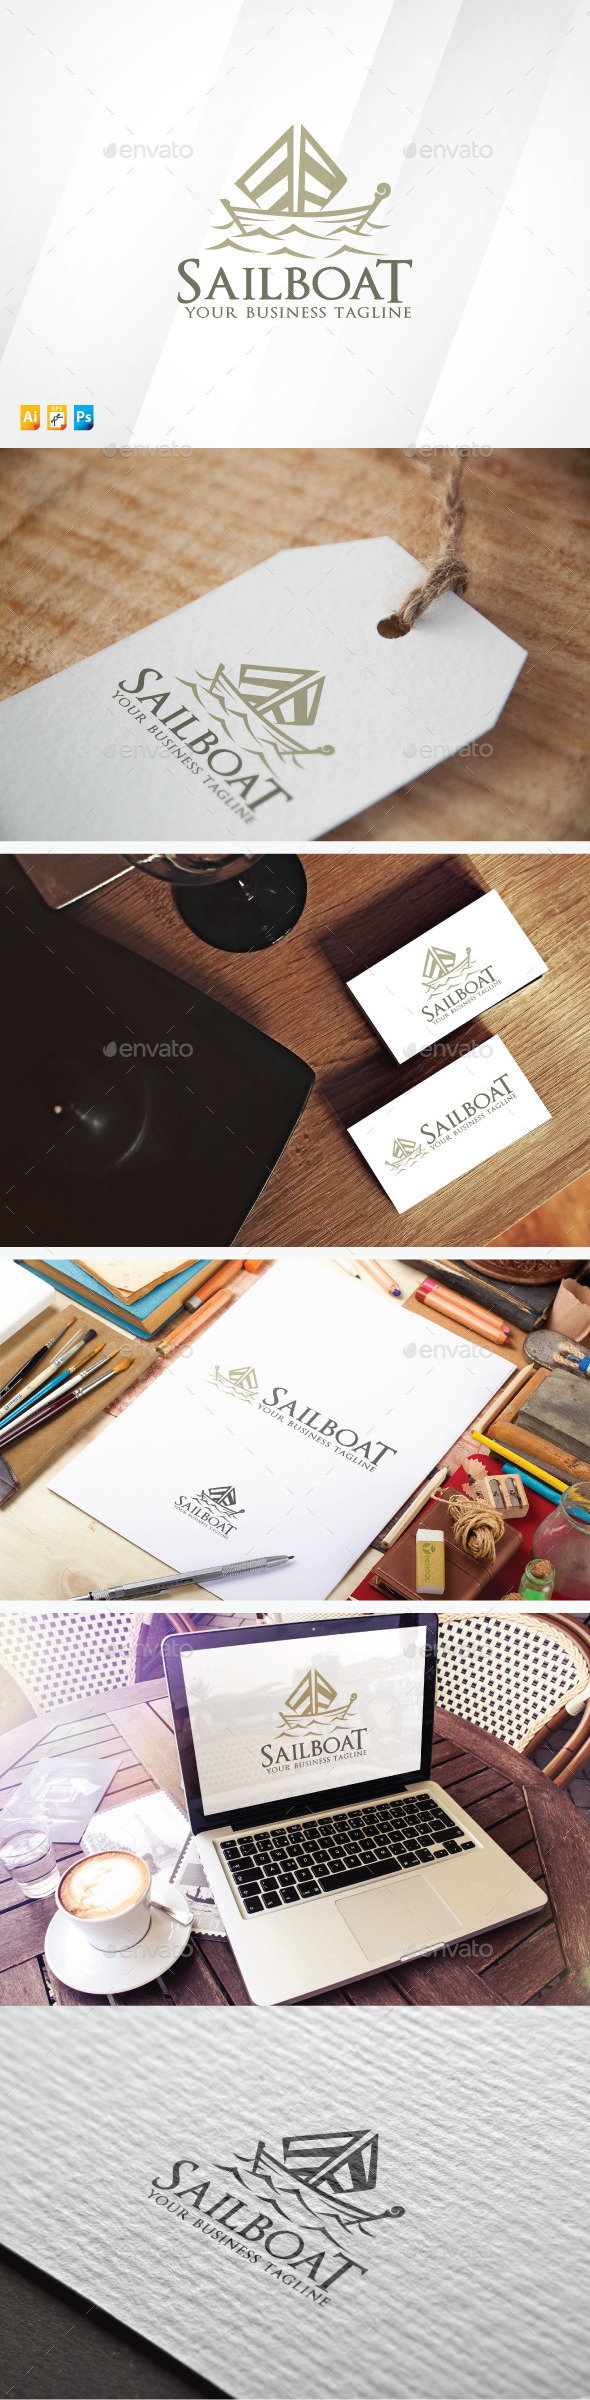 Sailboat - Objects Logo Templates